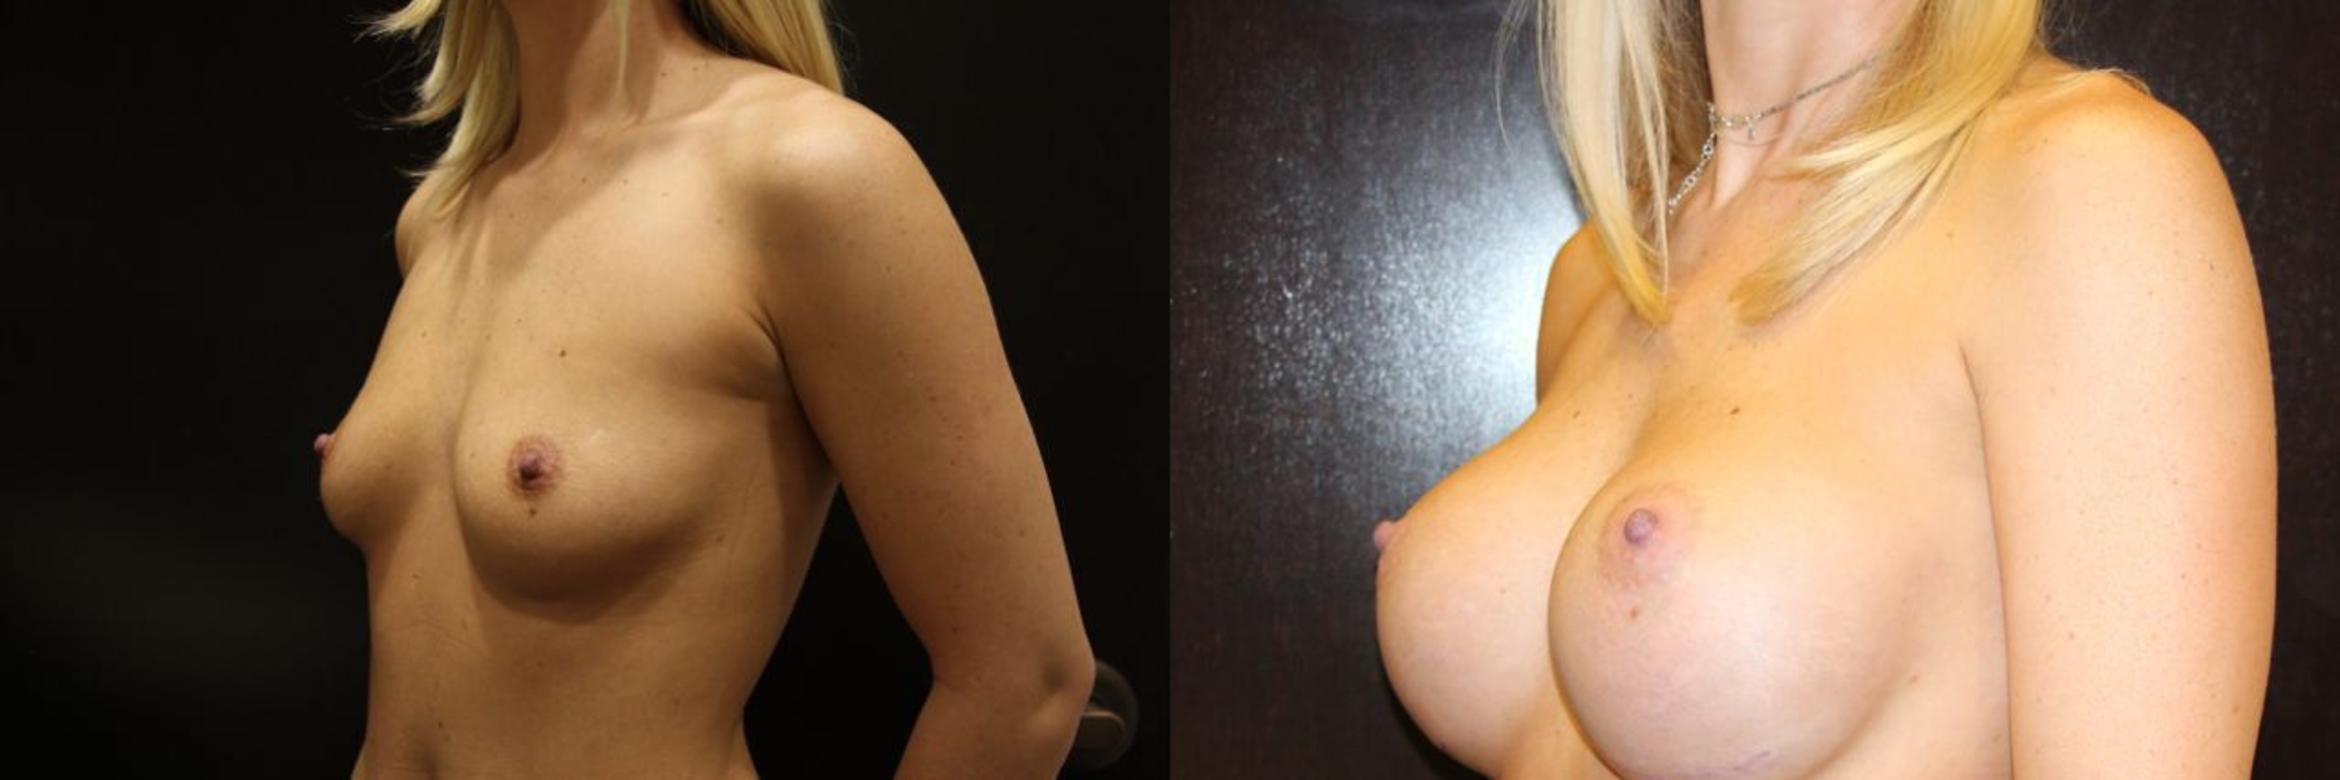 Breast Augmentation Case 14 Before & After View #5 | Gilbert, AZ | Dr. Josh Olson: Advanced Plastic Surgery Institute